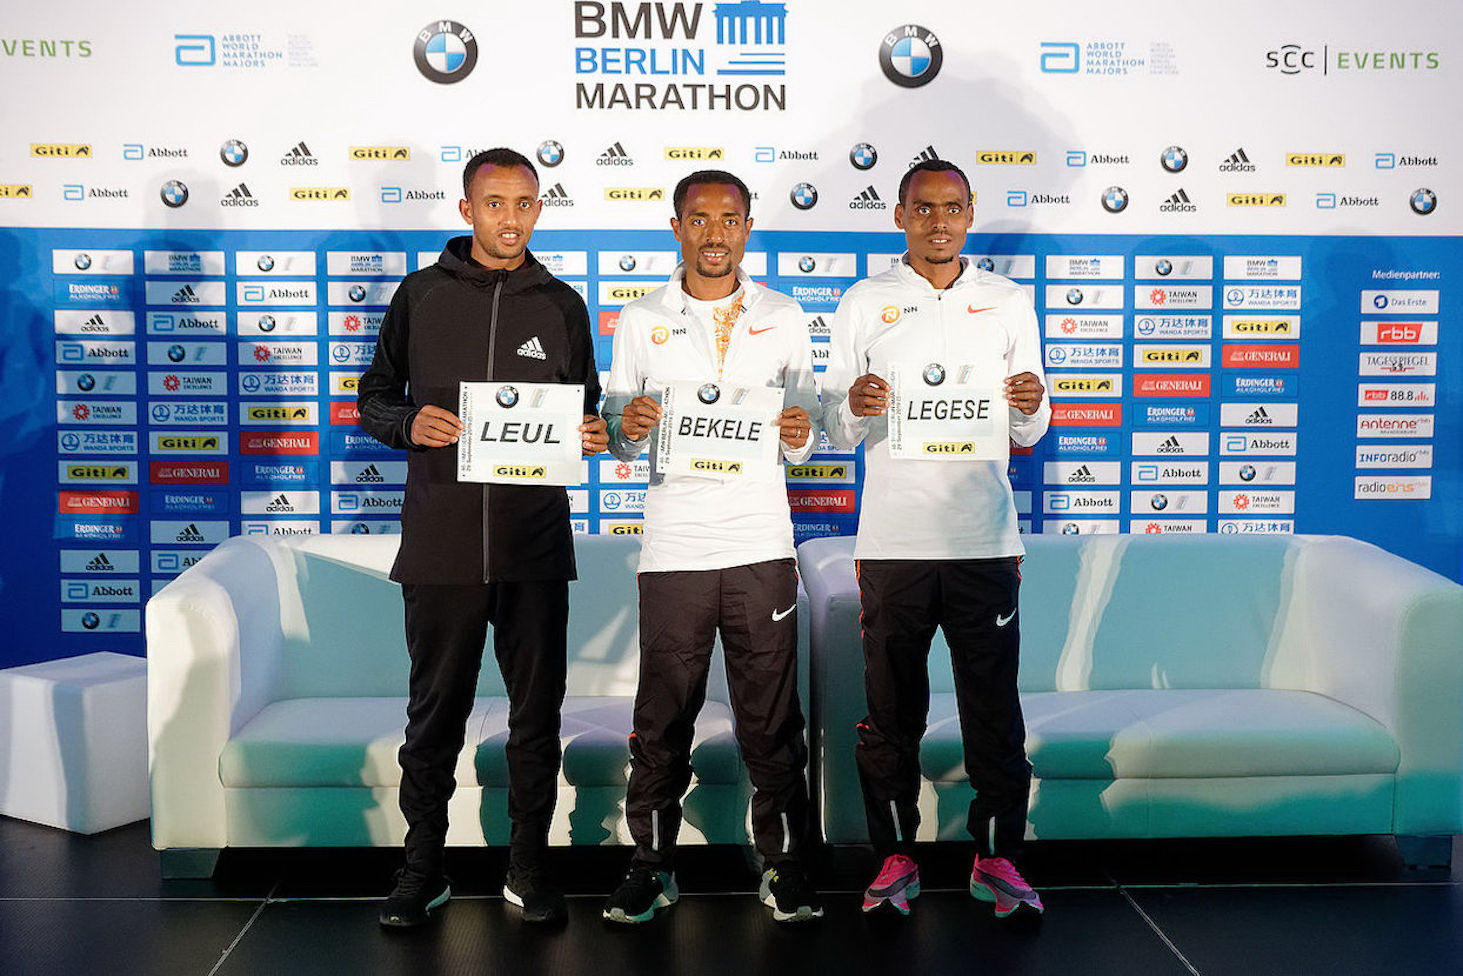 adidas' Fastest Runners Will Compete in Berlin Marathon with